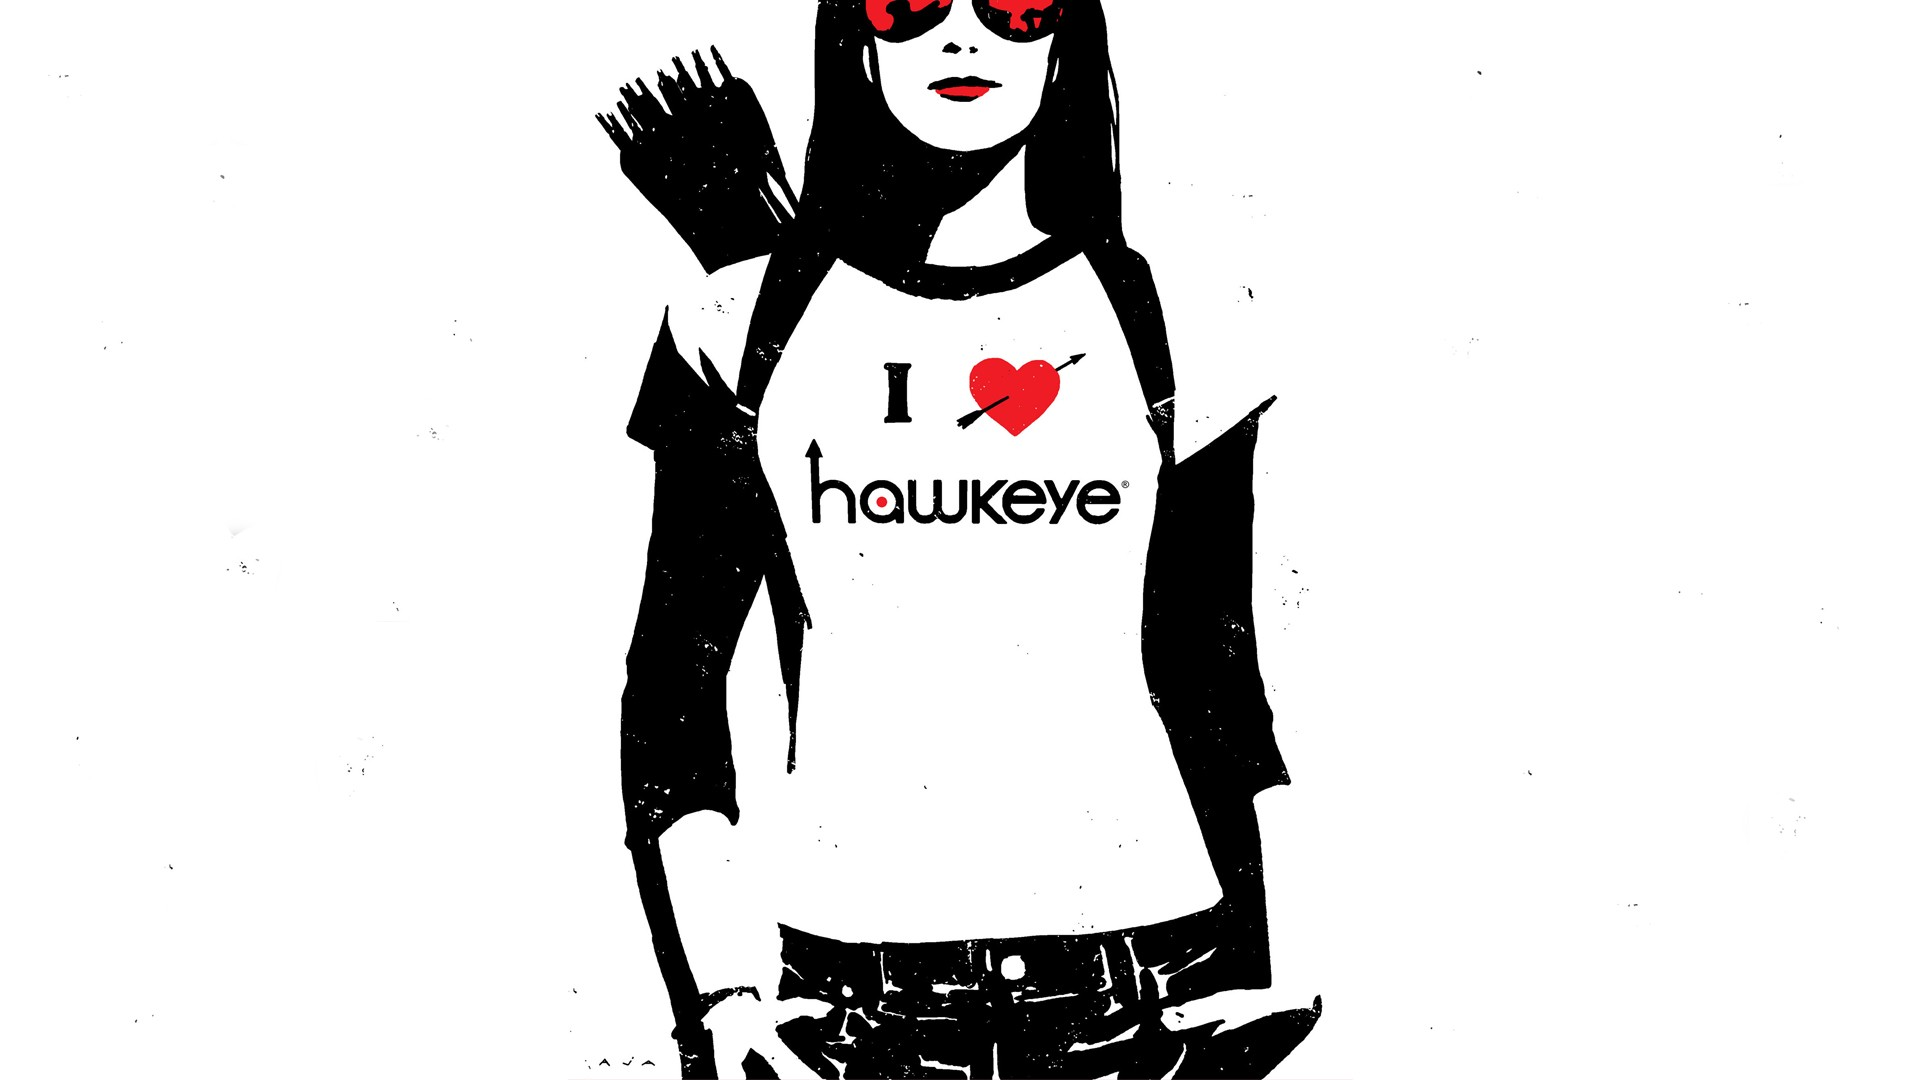 hawkeye wallpapers page - photo #8